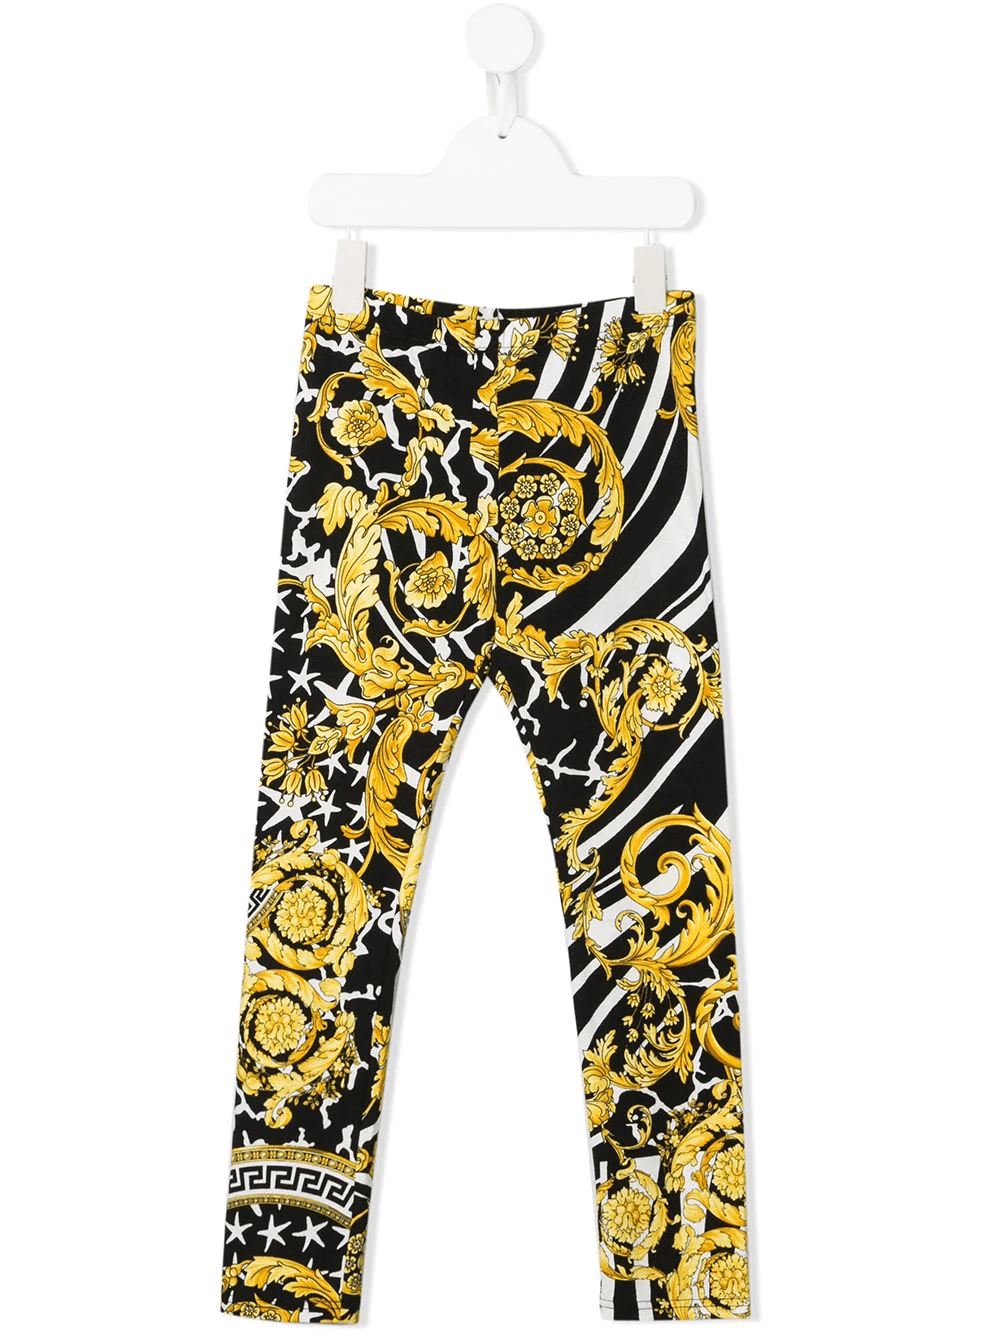 VERSACE Kids printed leggings - Maison De Fashion